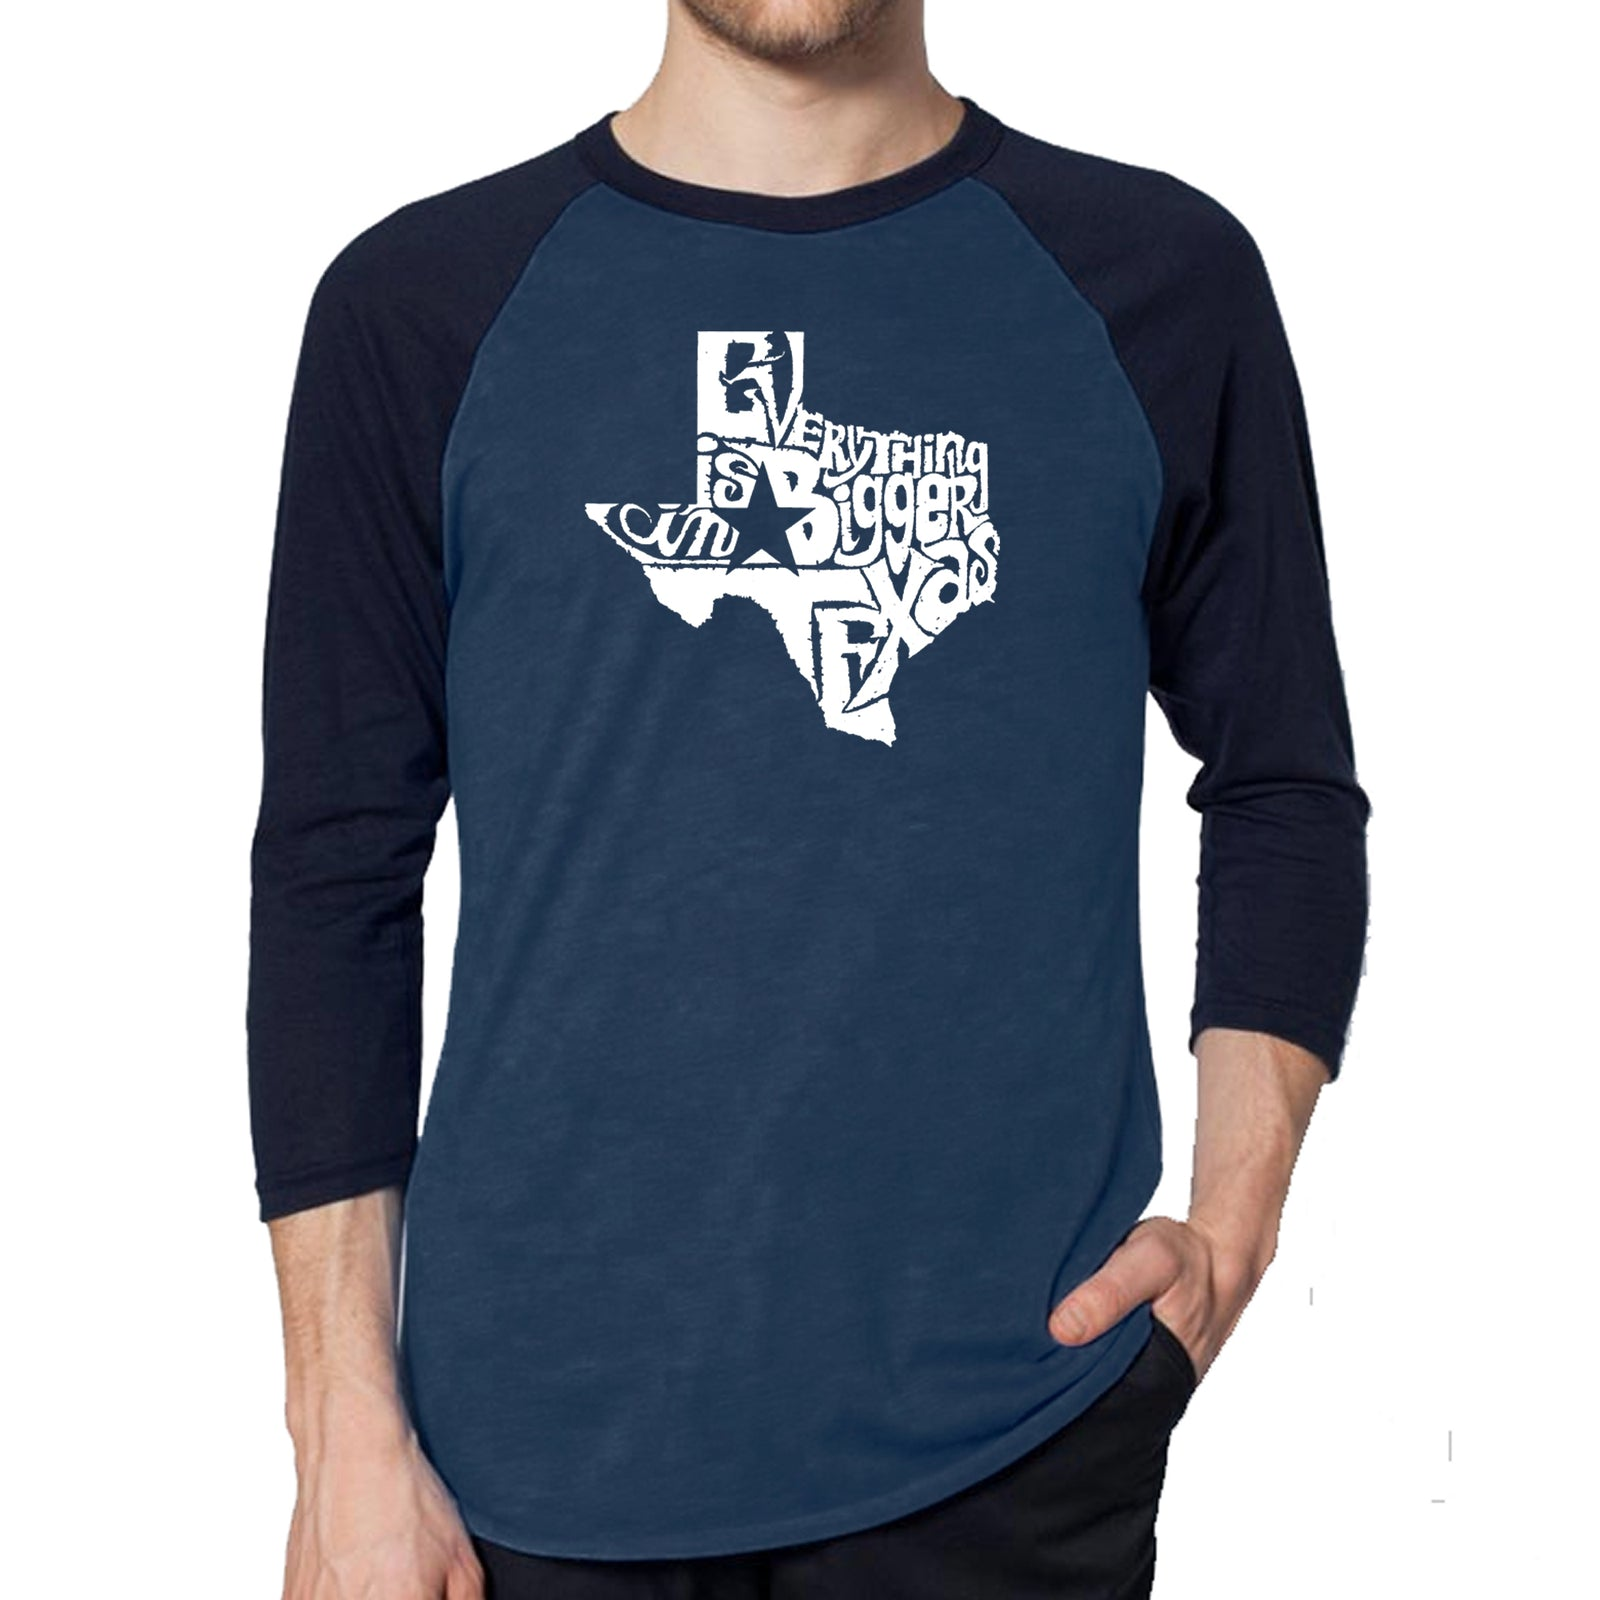 Men's Raglan Baseball Word Art T-shirt - Everything is Bigger in Texas